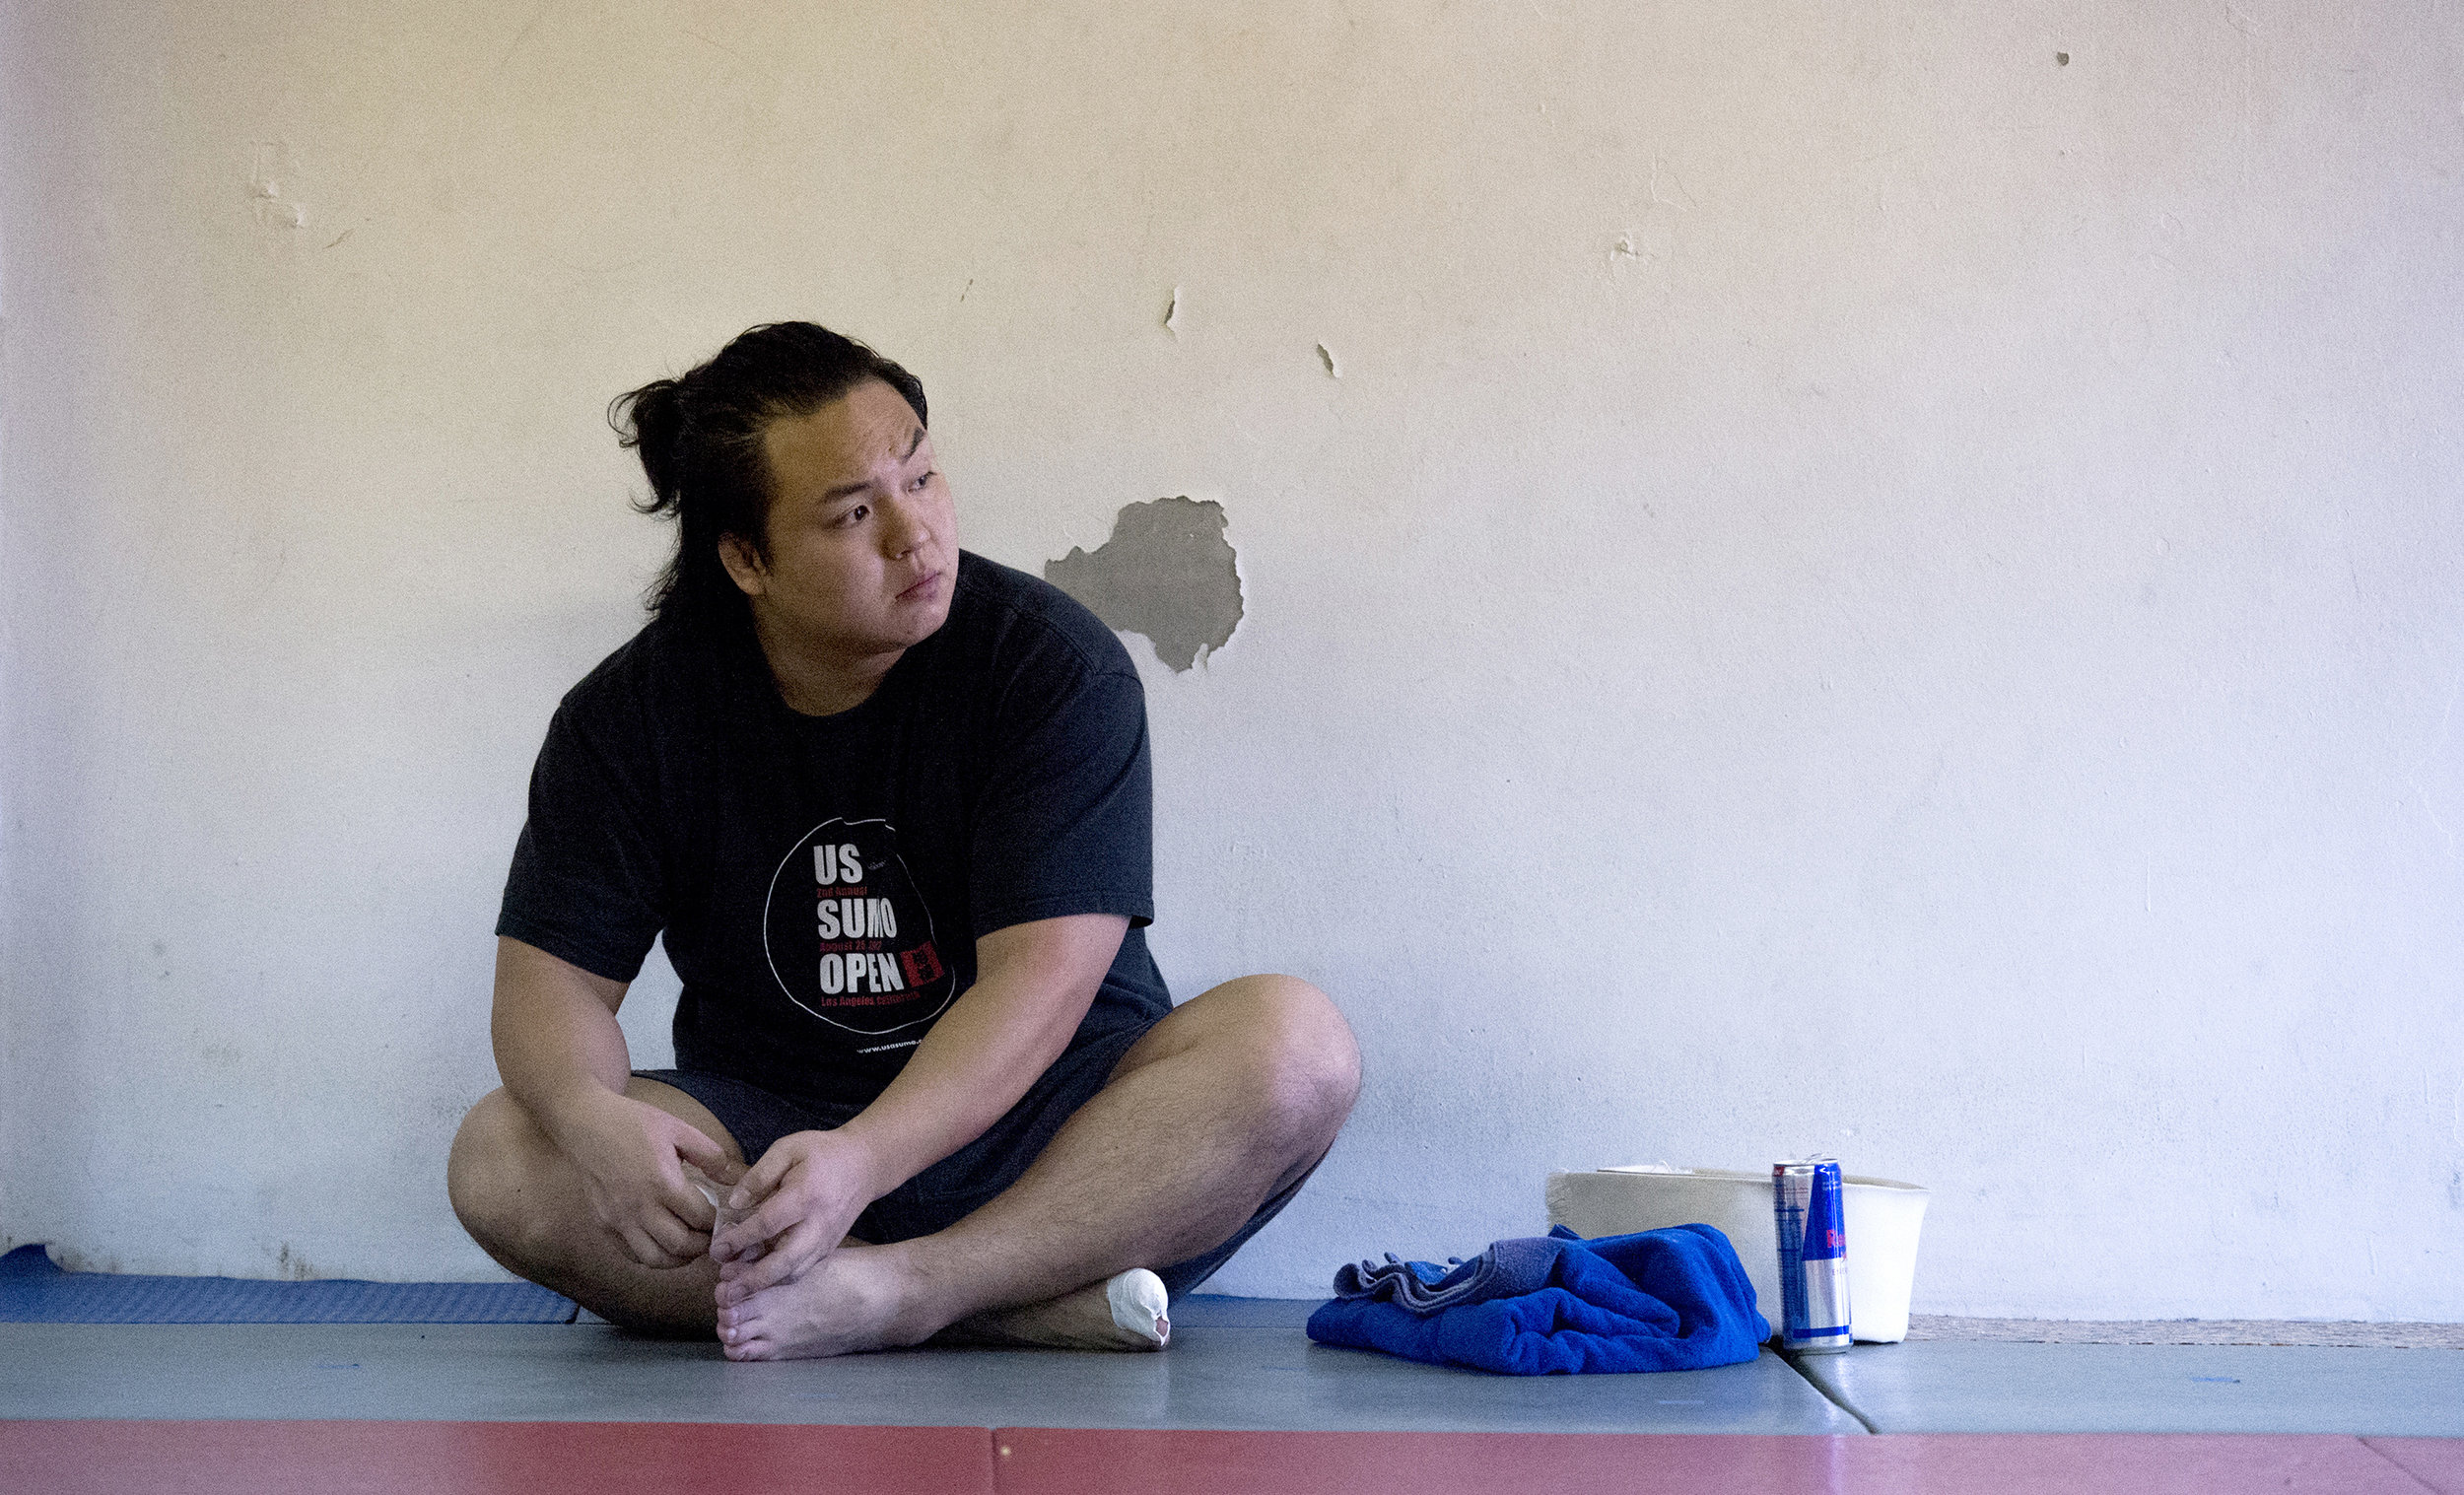 Takeshi Amitani, of Japan, tapes up his toes before a sumo wrestling practice in Carson Sunday, April 8, 2018.  Amitani coaches and trains sumo wrestling and is a 5-time Japanese National University Champion, he also was the undefeated Openweight champion in the  US Sumo Open last year.